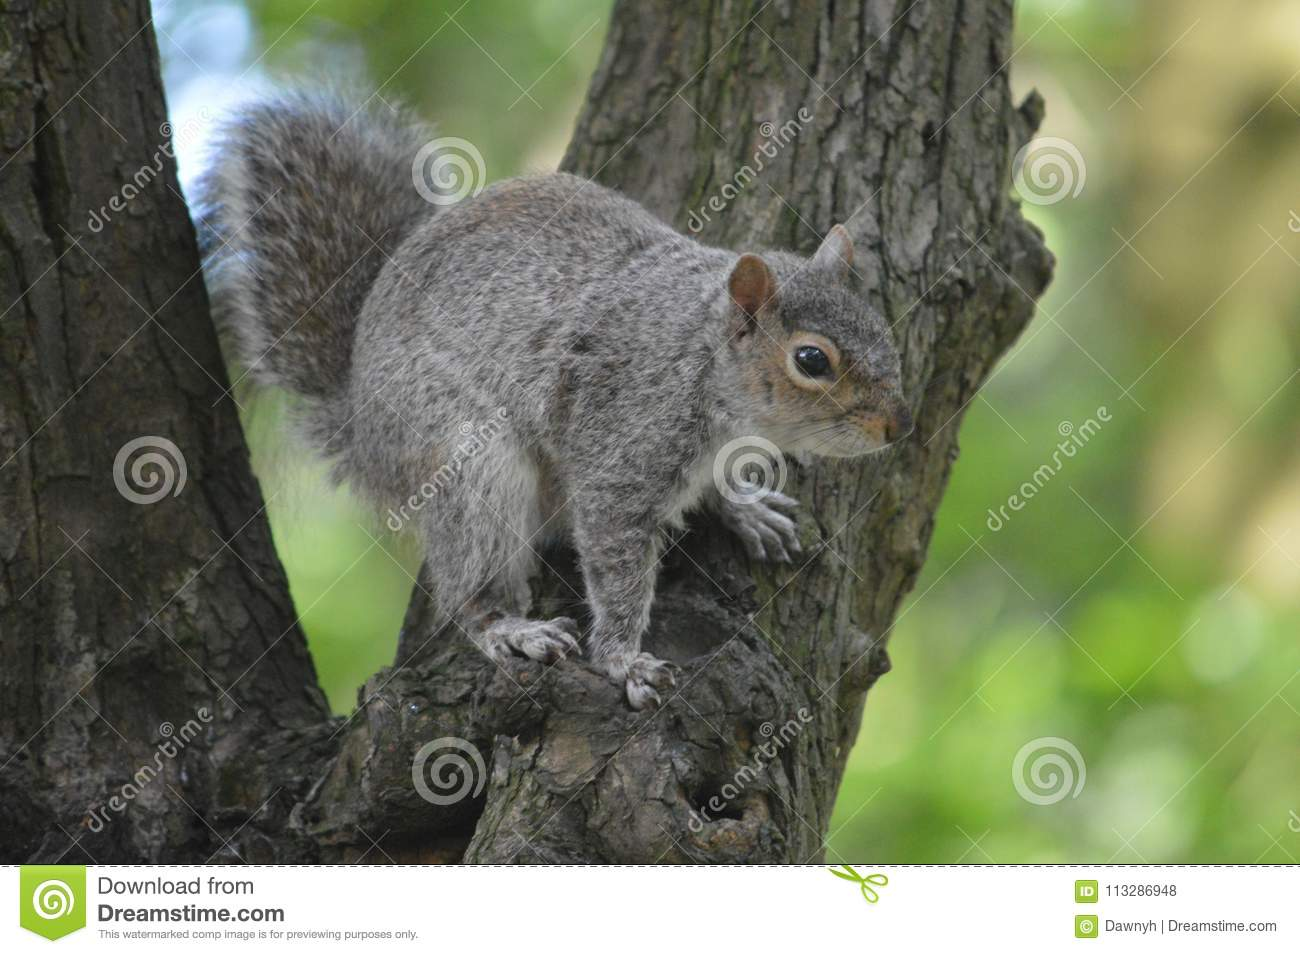 Grey Squirrel en un árbol en arbolados